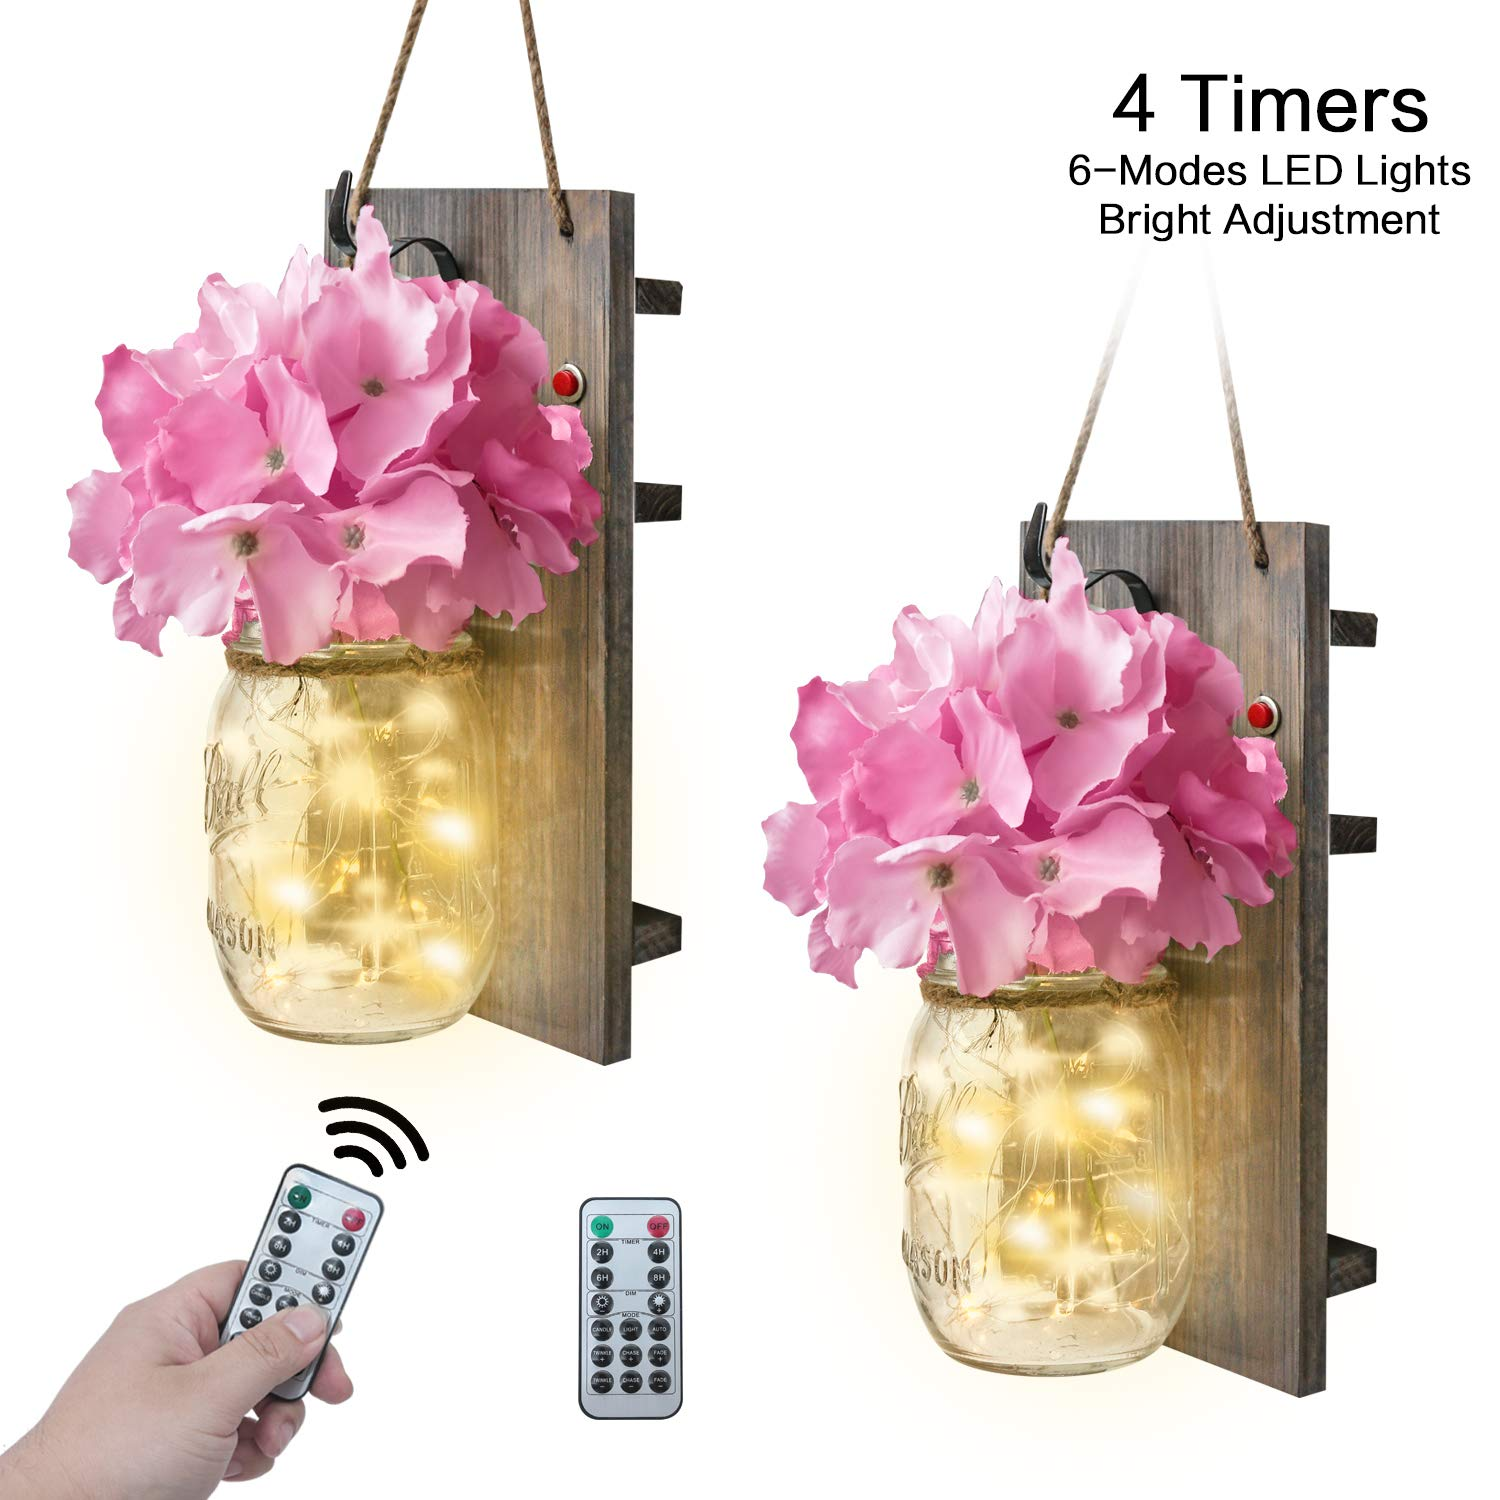 VIEFIN Mason Jar Sconces Wall Decor,Rustic Wall Sconces Home Decor with Remote Control, Silk Hydrangea,Gray Wood Board and LED Strip with 20 Fairy Lights(2 Pack, Pink) by VIEFIN